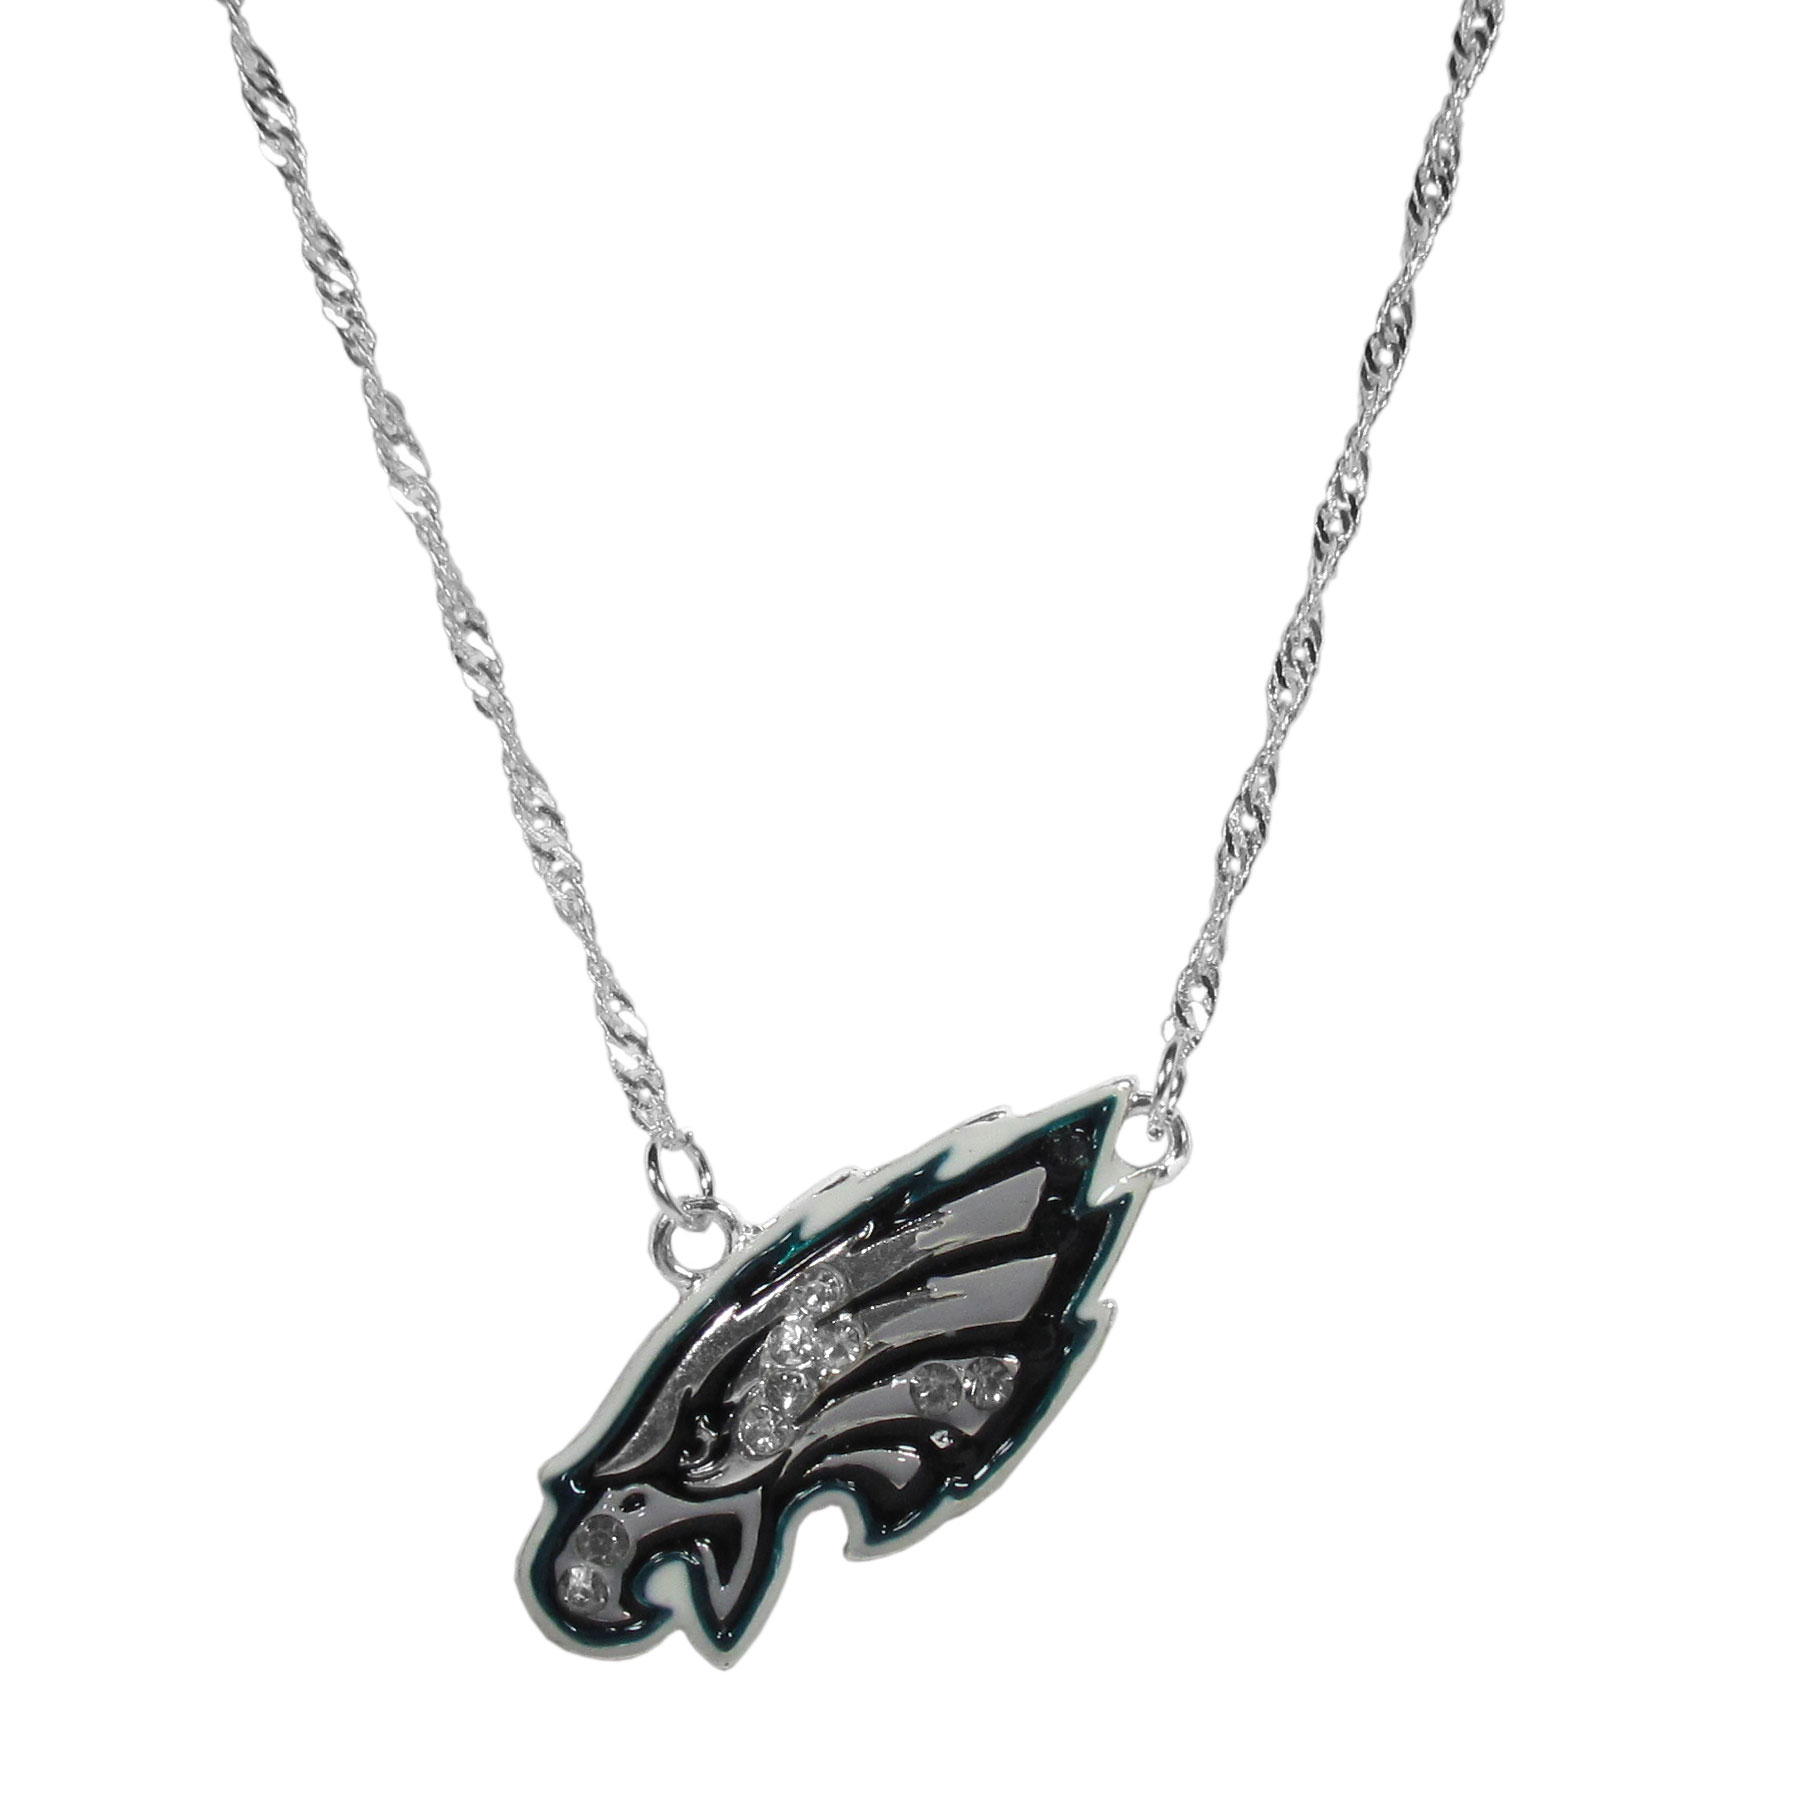 Philadelphia Eagles Crystal Logo Necklace - This is a must-have fan accessory with a delicately beautiful 16 inch silver plated chain and eye-catching, large Philadelphia Eagles charm with tons of sparkling team colored crystals. The trendy look is finished with detailed team colors and the chain can be adjusted with a 2 inch extender. The bold look makes a statement on game day and the classic style is chic enough for everyday.